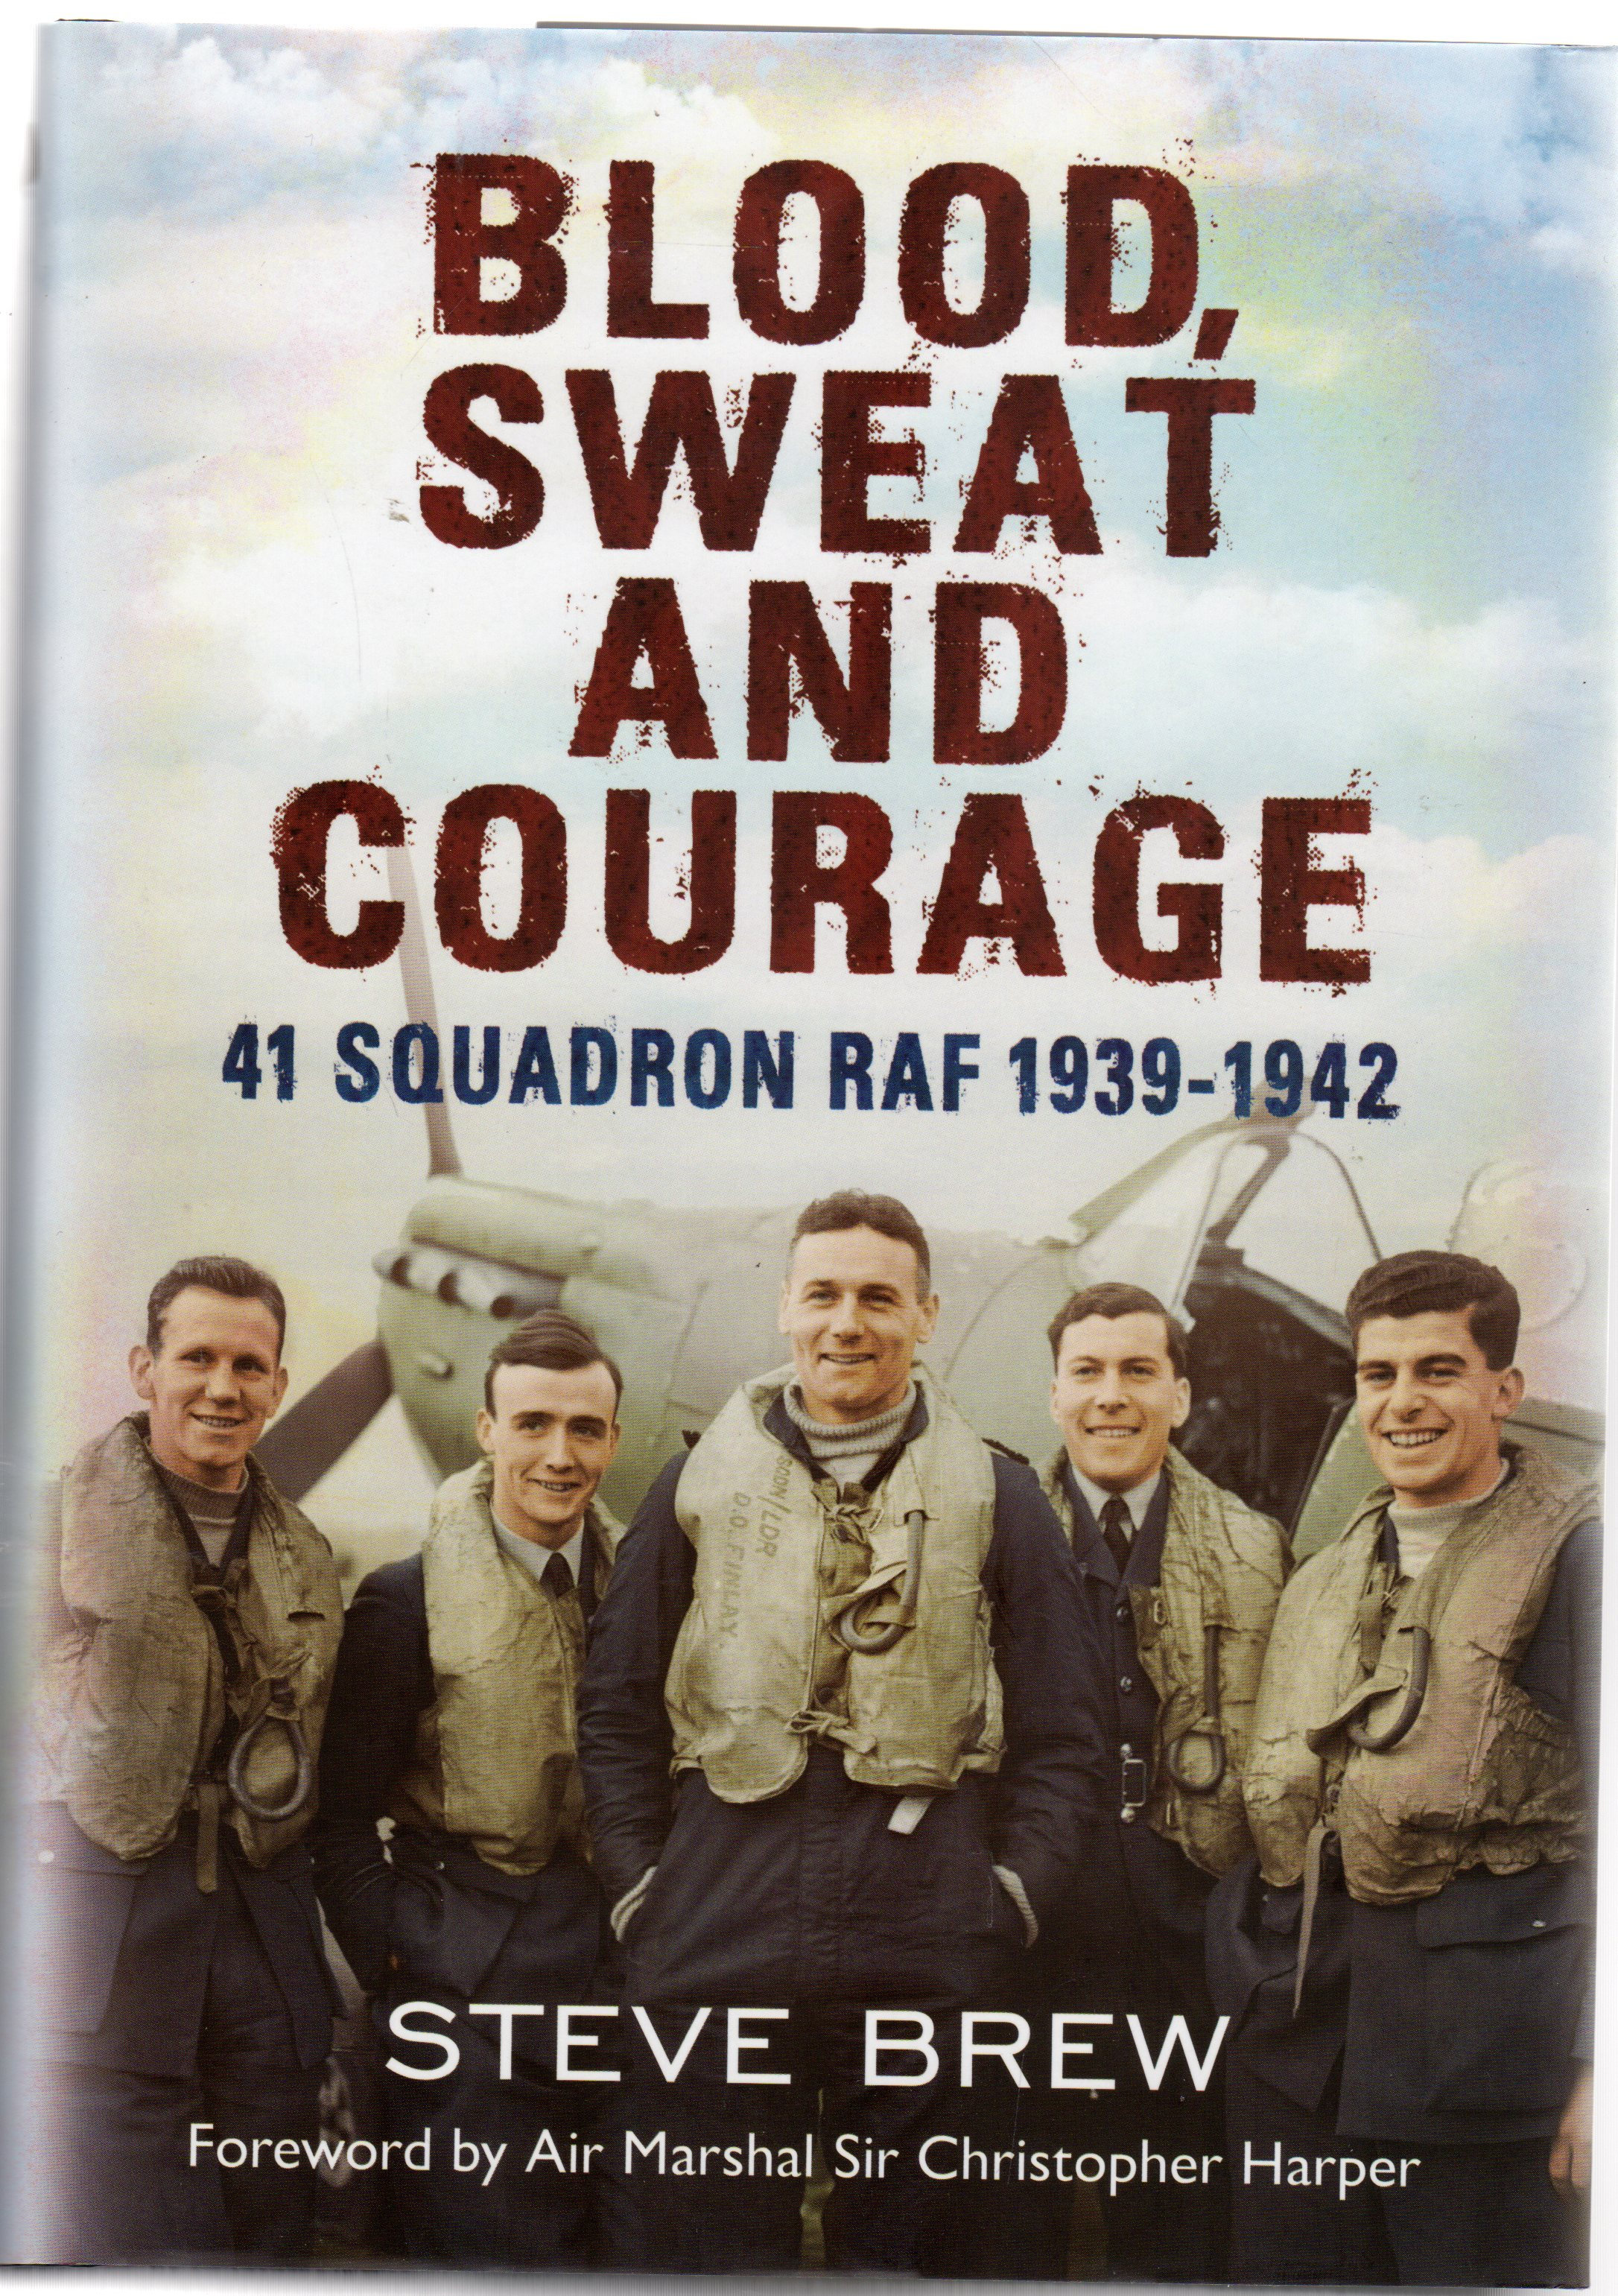 Image for Blood, Sweat and Courage, 41 Squadron RAF 1939-1942